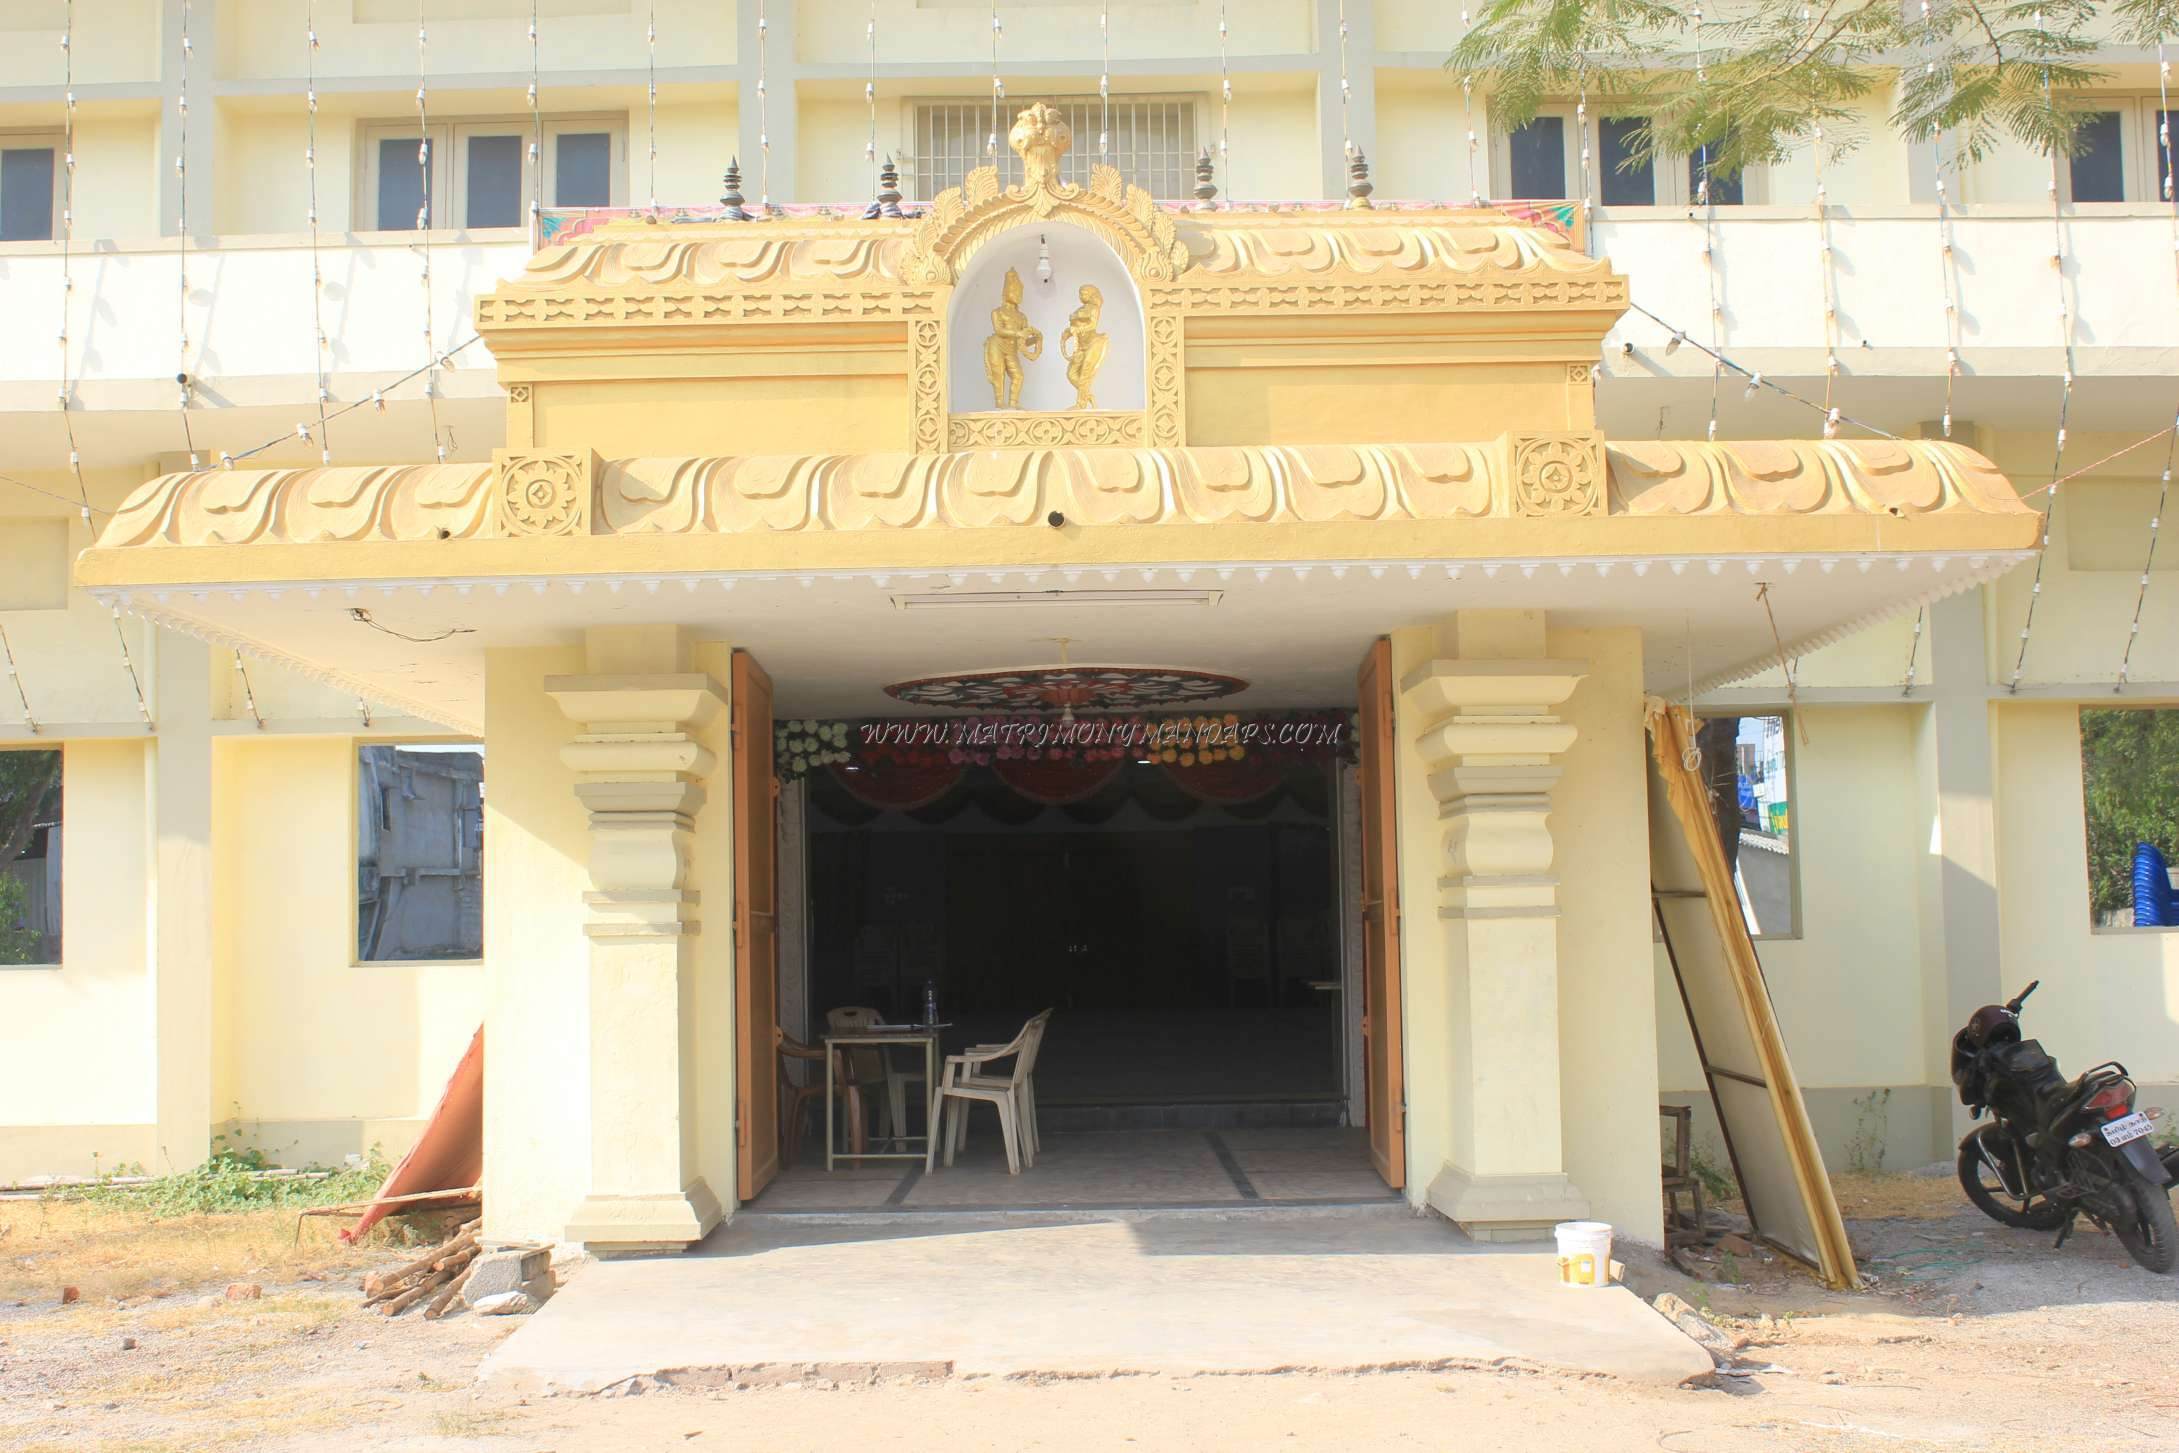 Find the availability of the Sri Lakshmi Thirumana Mandapam (A/C) in Poonamallee, Chennai and avail special offers